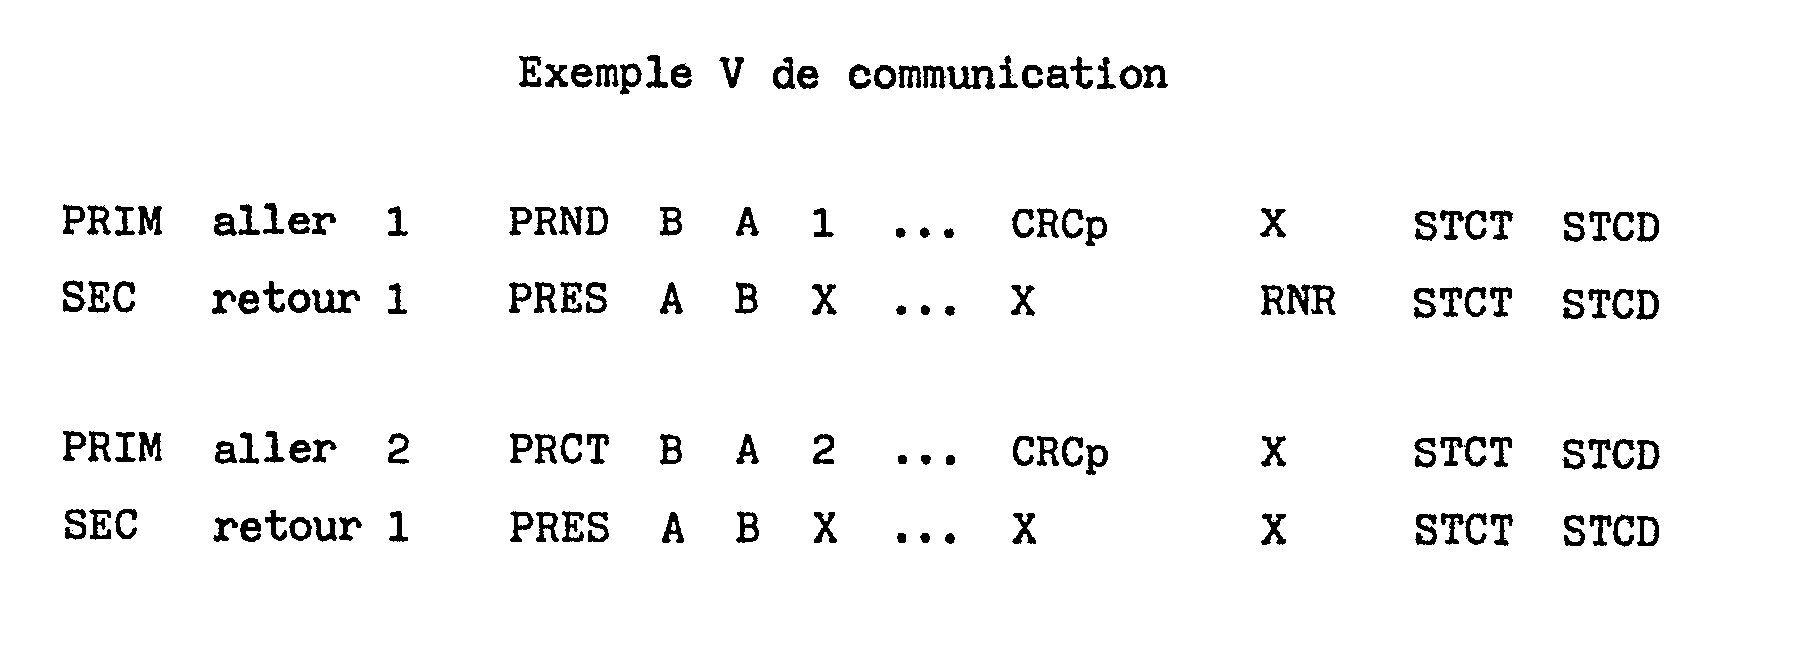 Ep0104991a1 Local Hybrid Communication Network In Circuit And Re A 2 To 4 Wire Telephone Figure Imgb0006